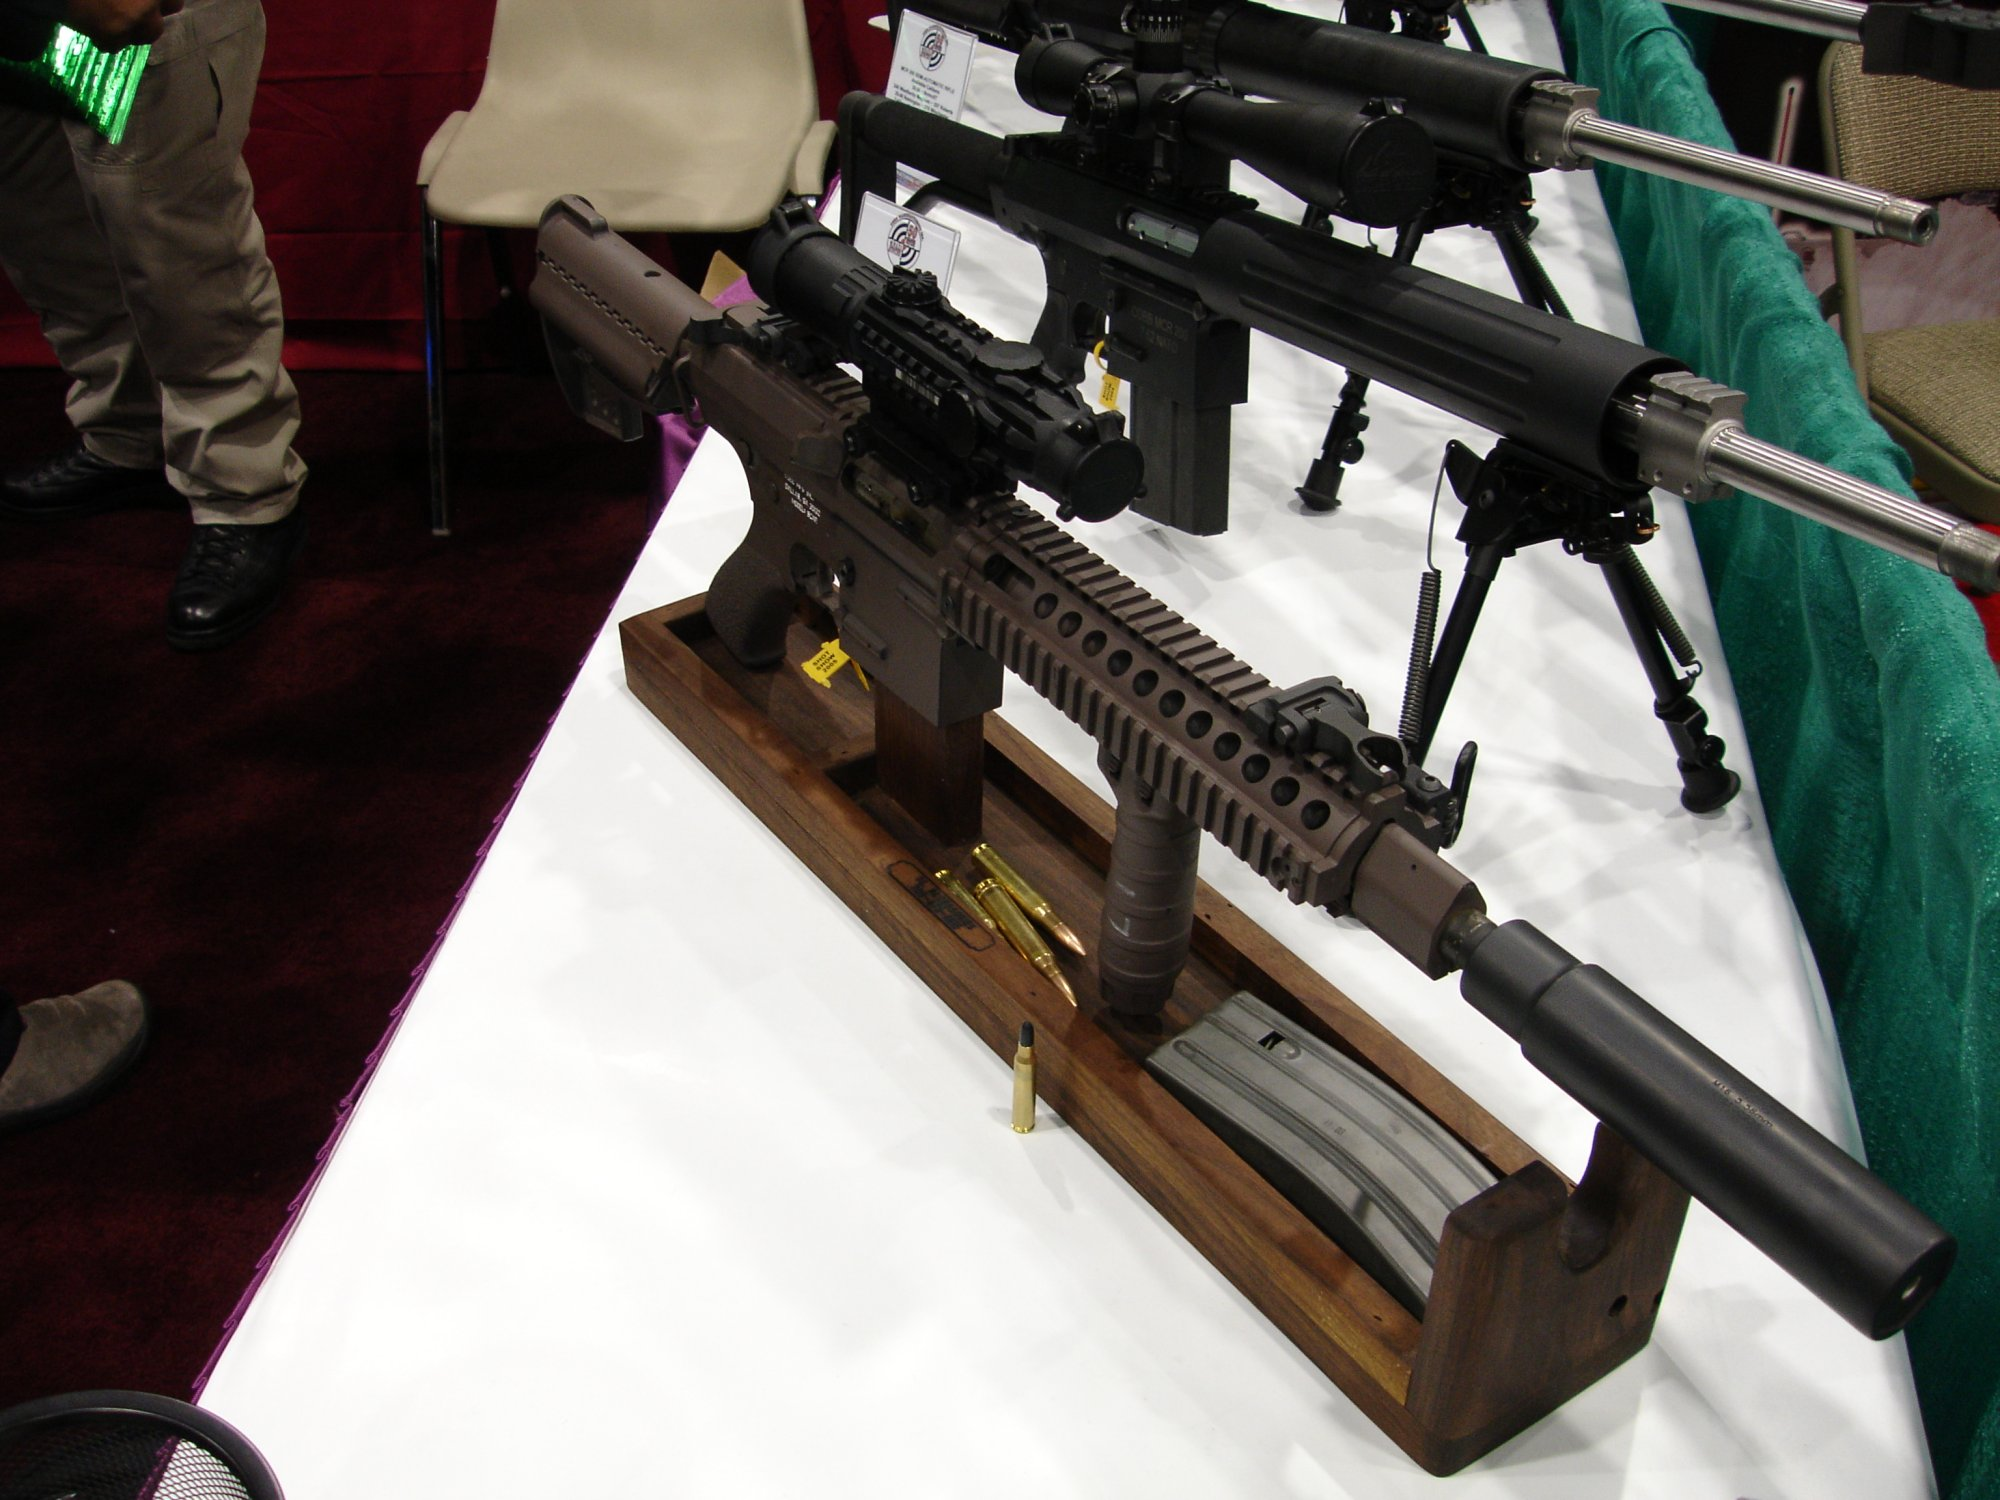 CobbMCR SCARprototype.308 1 <!  :en  >Cobb SCAR Candidate/MCR Prototype Weapons at SHOT Show 2005<!  :  >